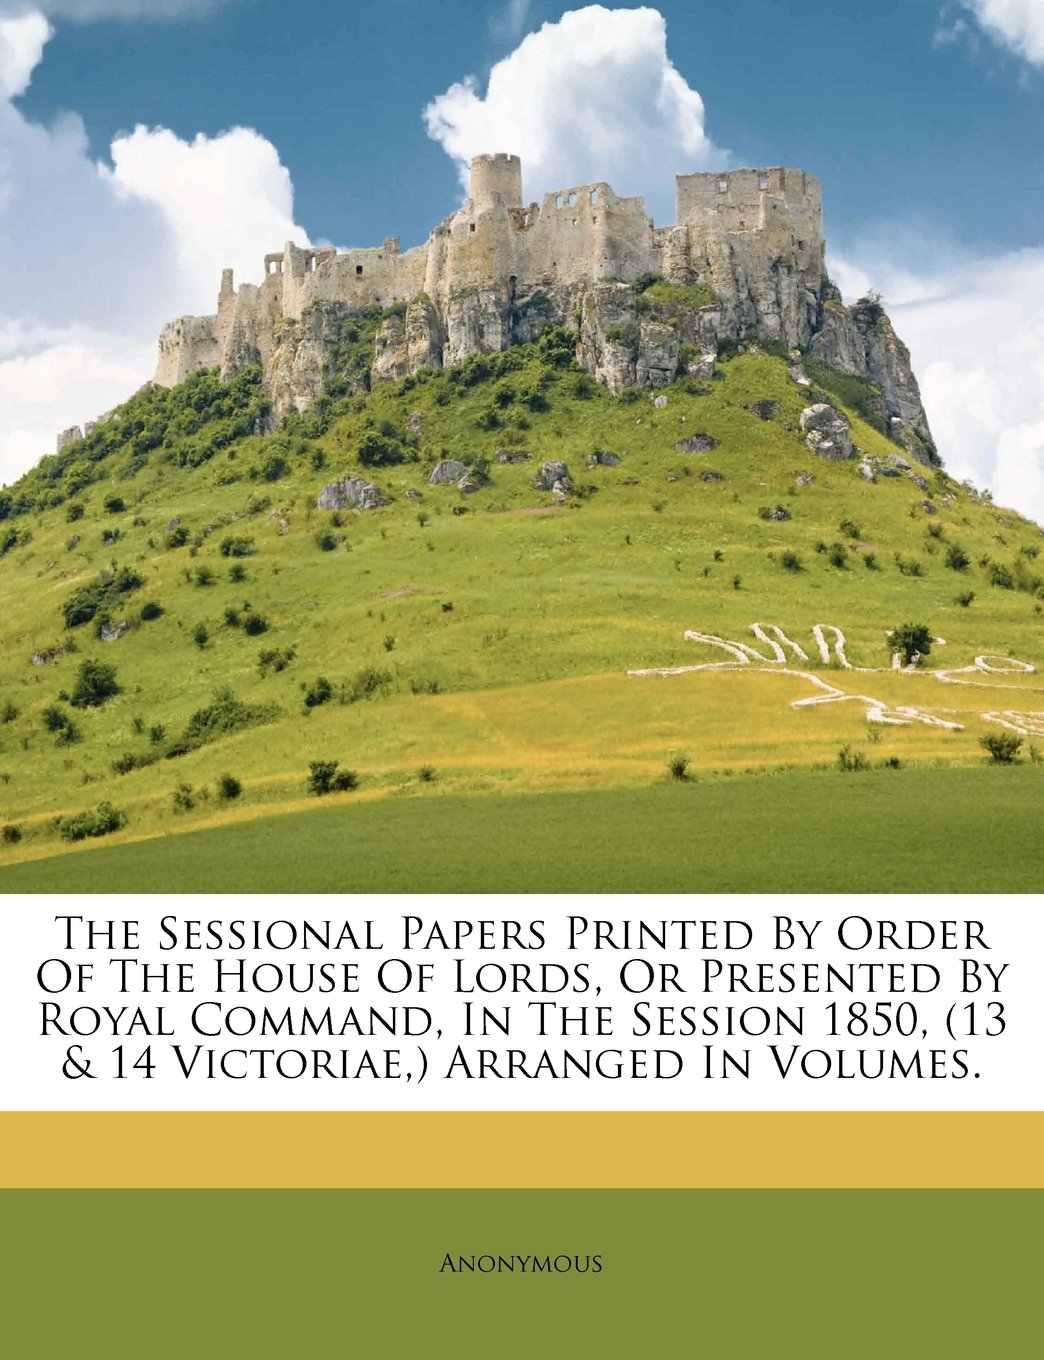 Read Online The Sessional Papers Printed By Order Of The House Of Lords, Or Presented By Royal Command, In The Session 1850, (13 & 14 Victoriae,) Arranged In Volumes. PDF